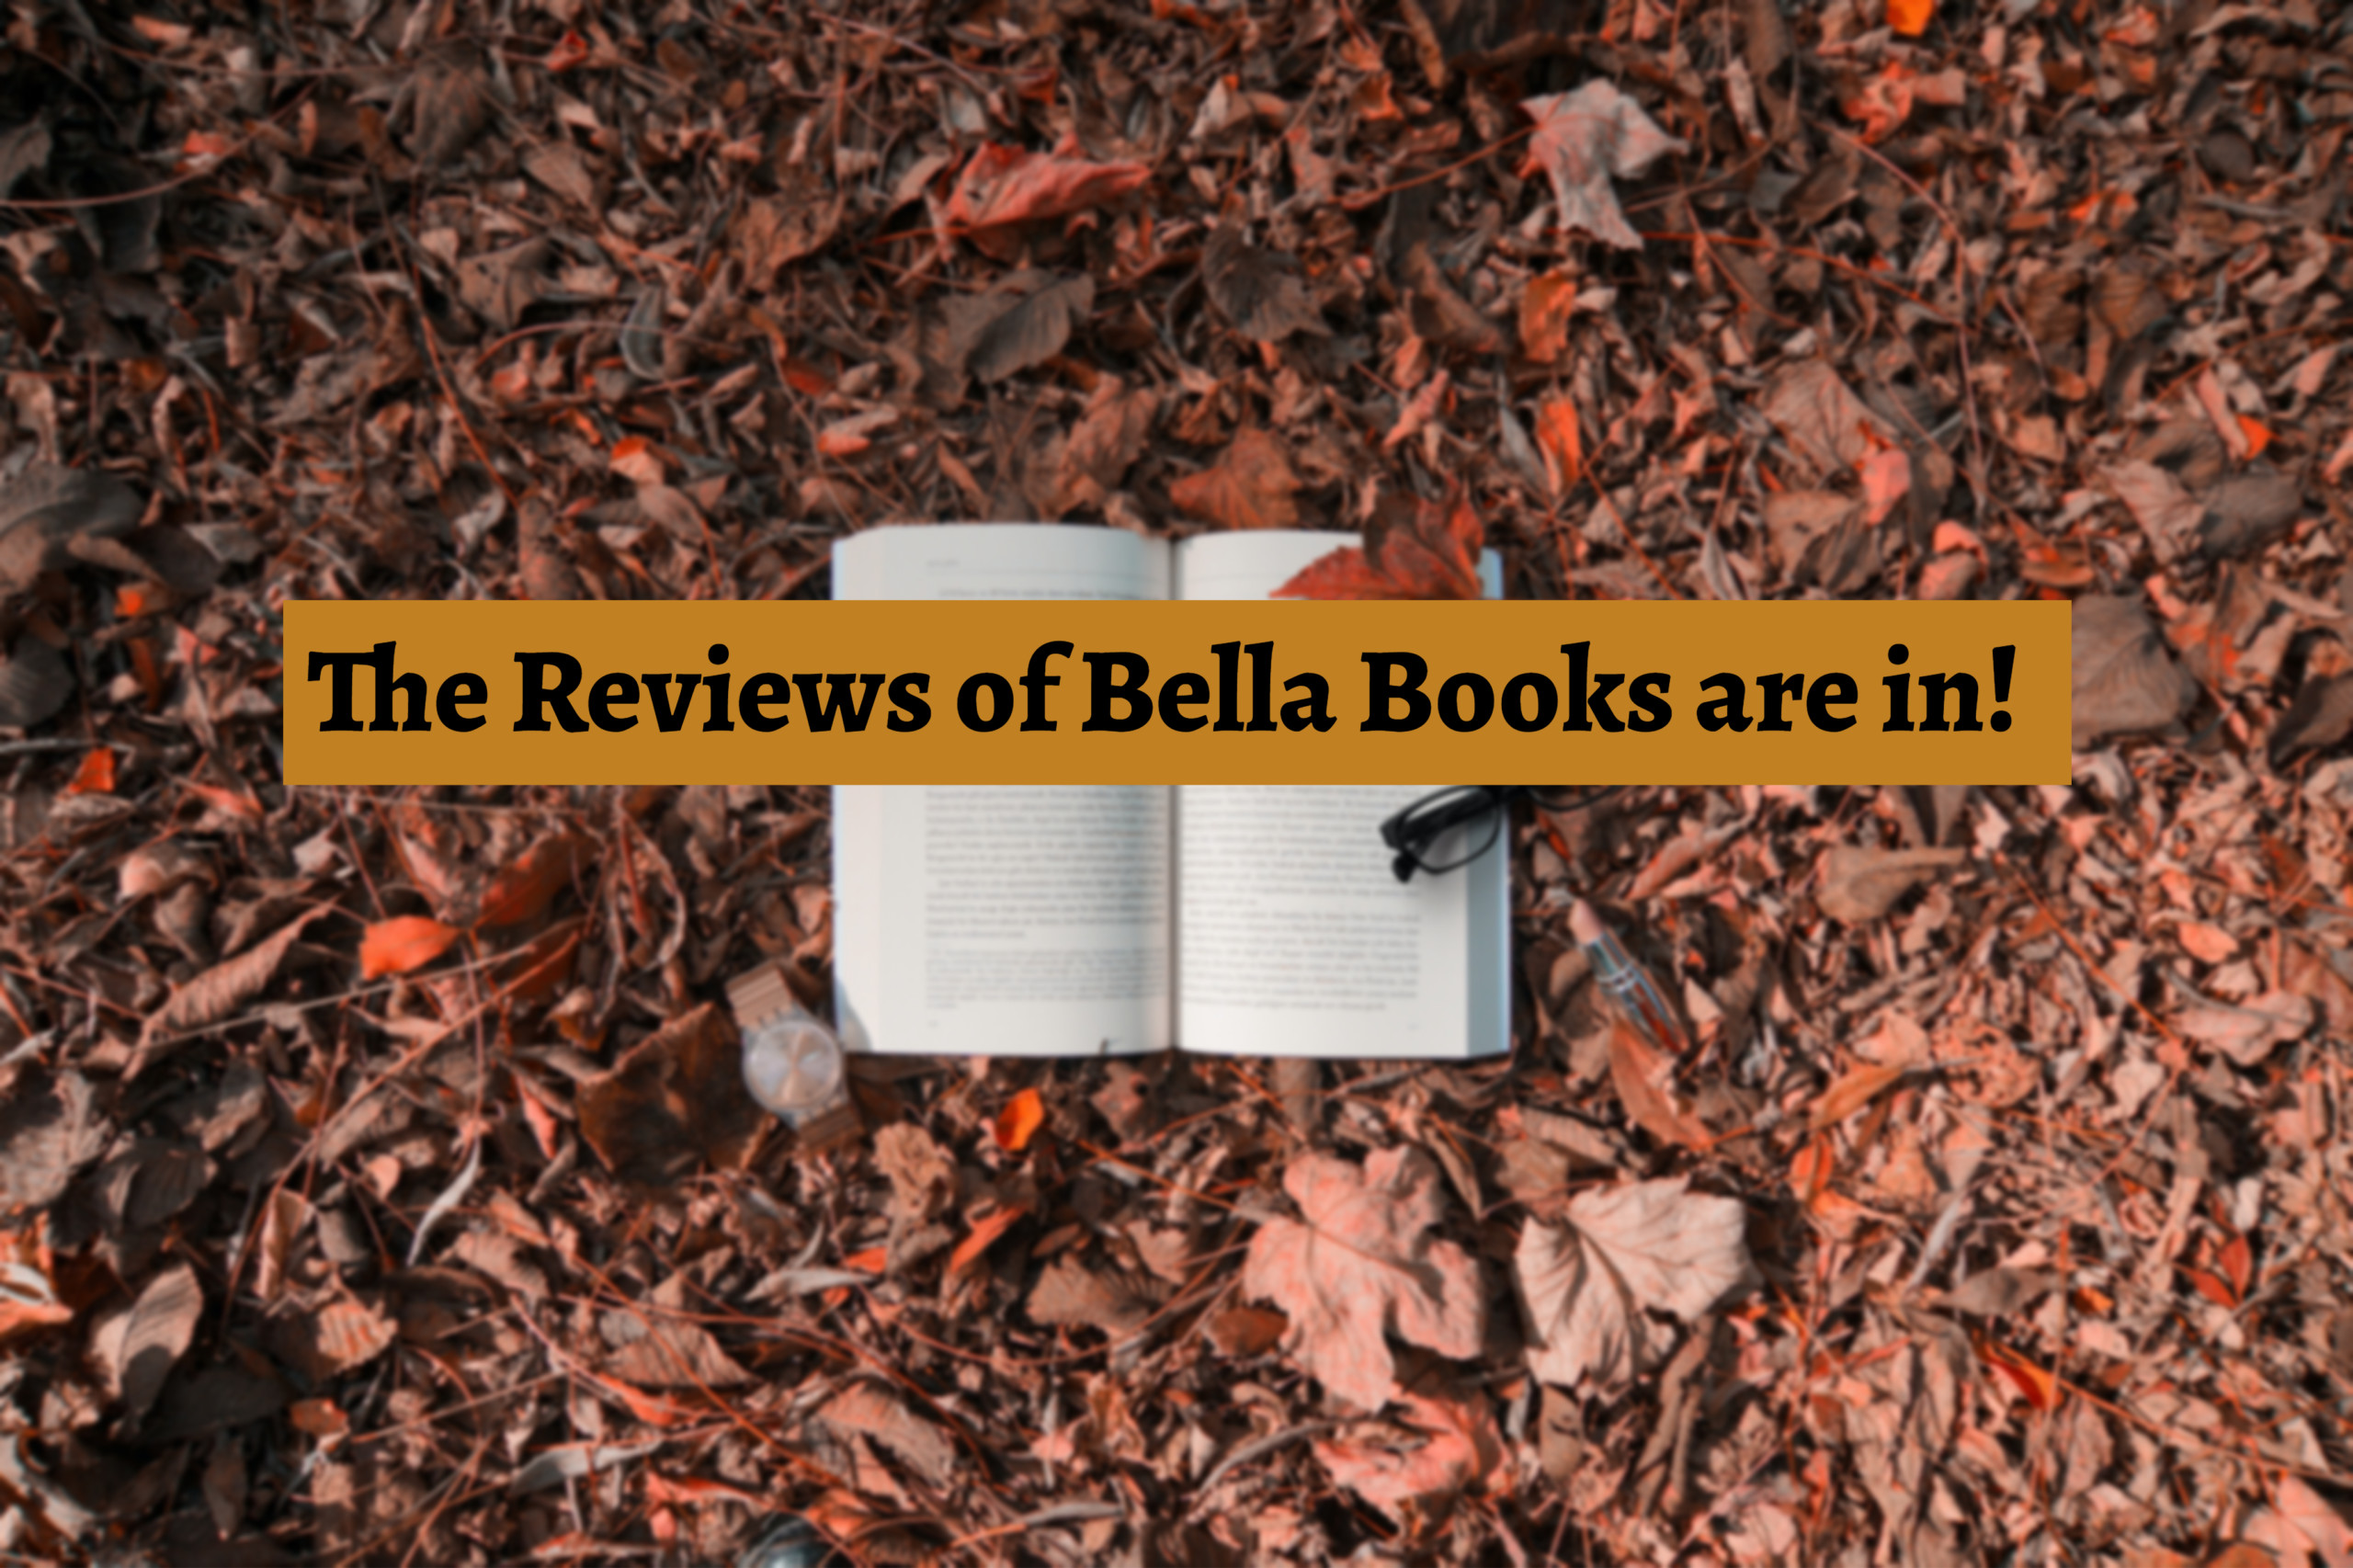 Bella Books reviews are in